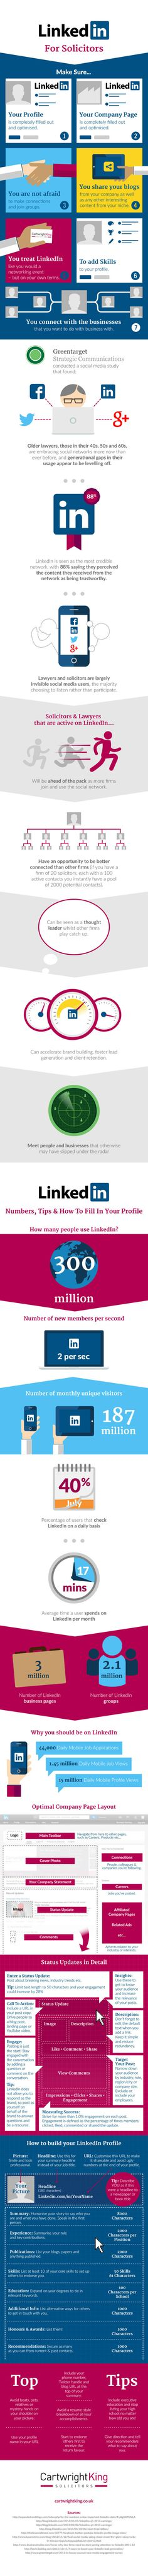 LinkedIn Infographic - Solicitors , Building Your Business Network Online Internet Marketing, Online Marketing, Social Media Marketing, Digital Marketing, Blogging, Social Projects, Business Networking, Professional Networking, Apps